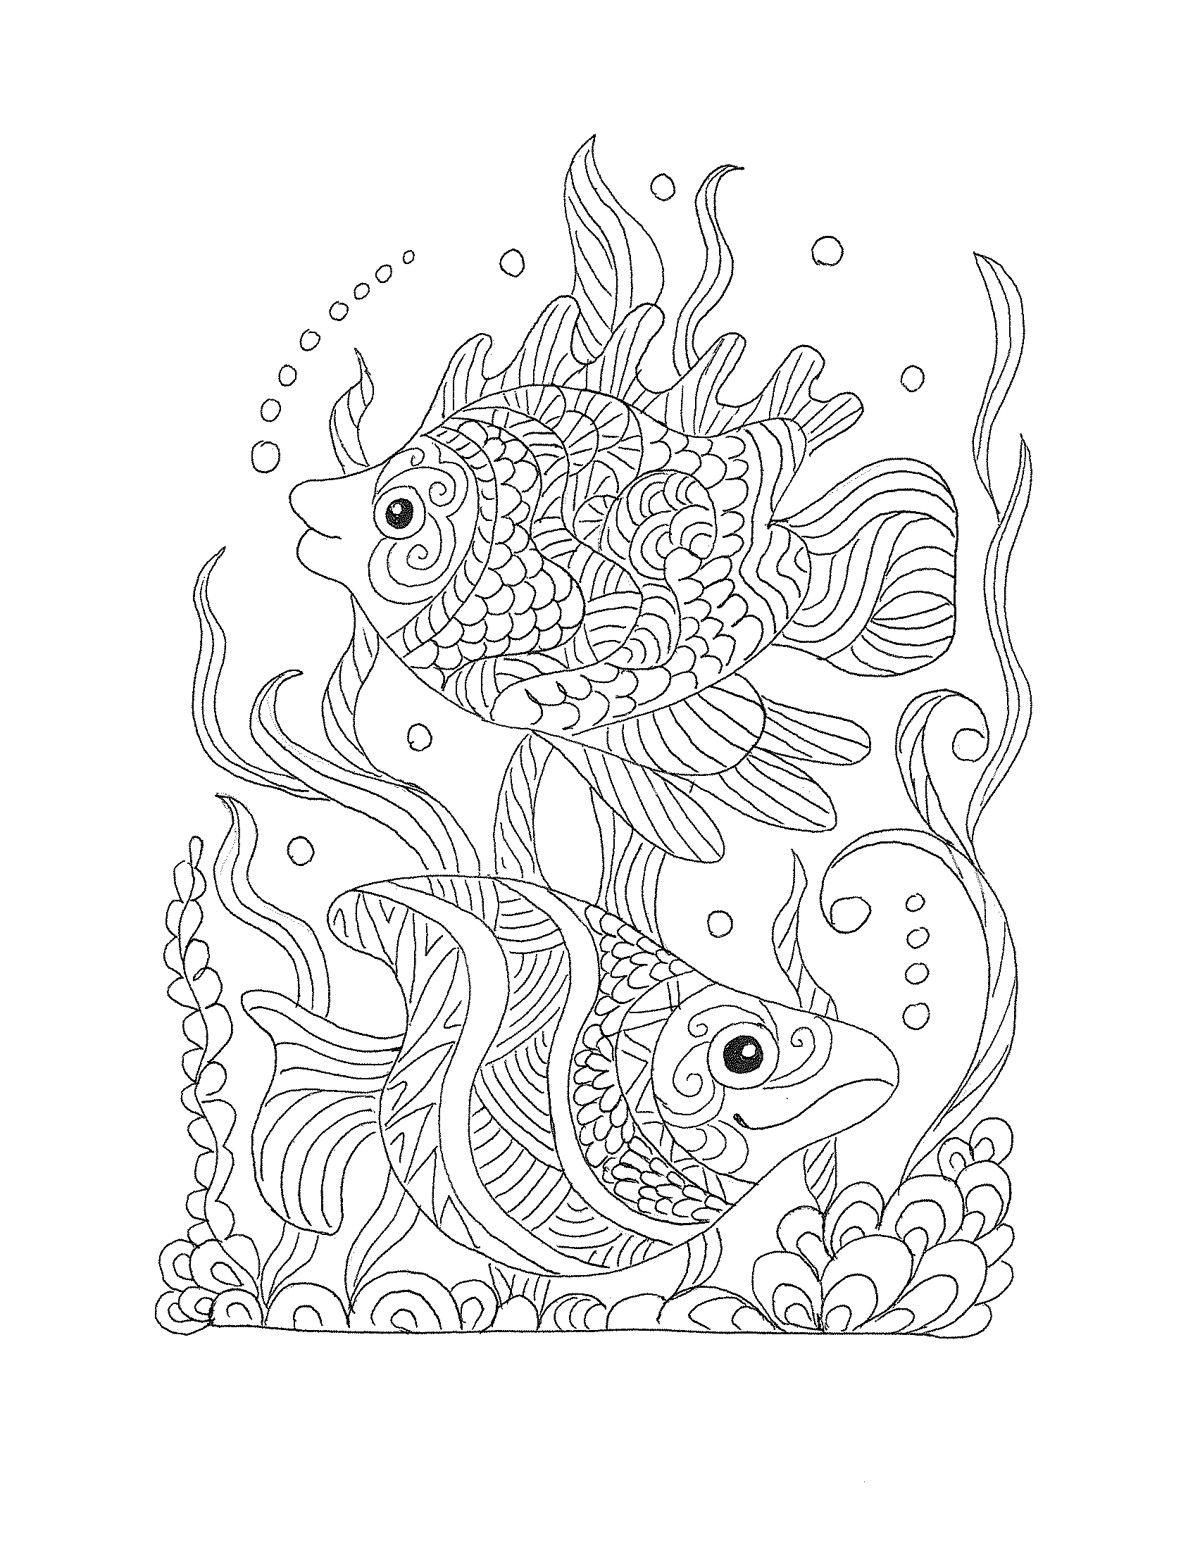 c31fb7ef3dd8 The Artist in You: Coloring Book for Adults eBook: Irina Velman ...